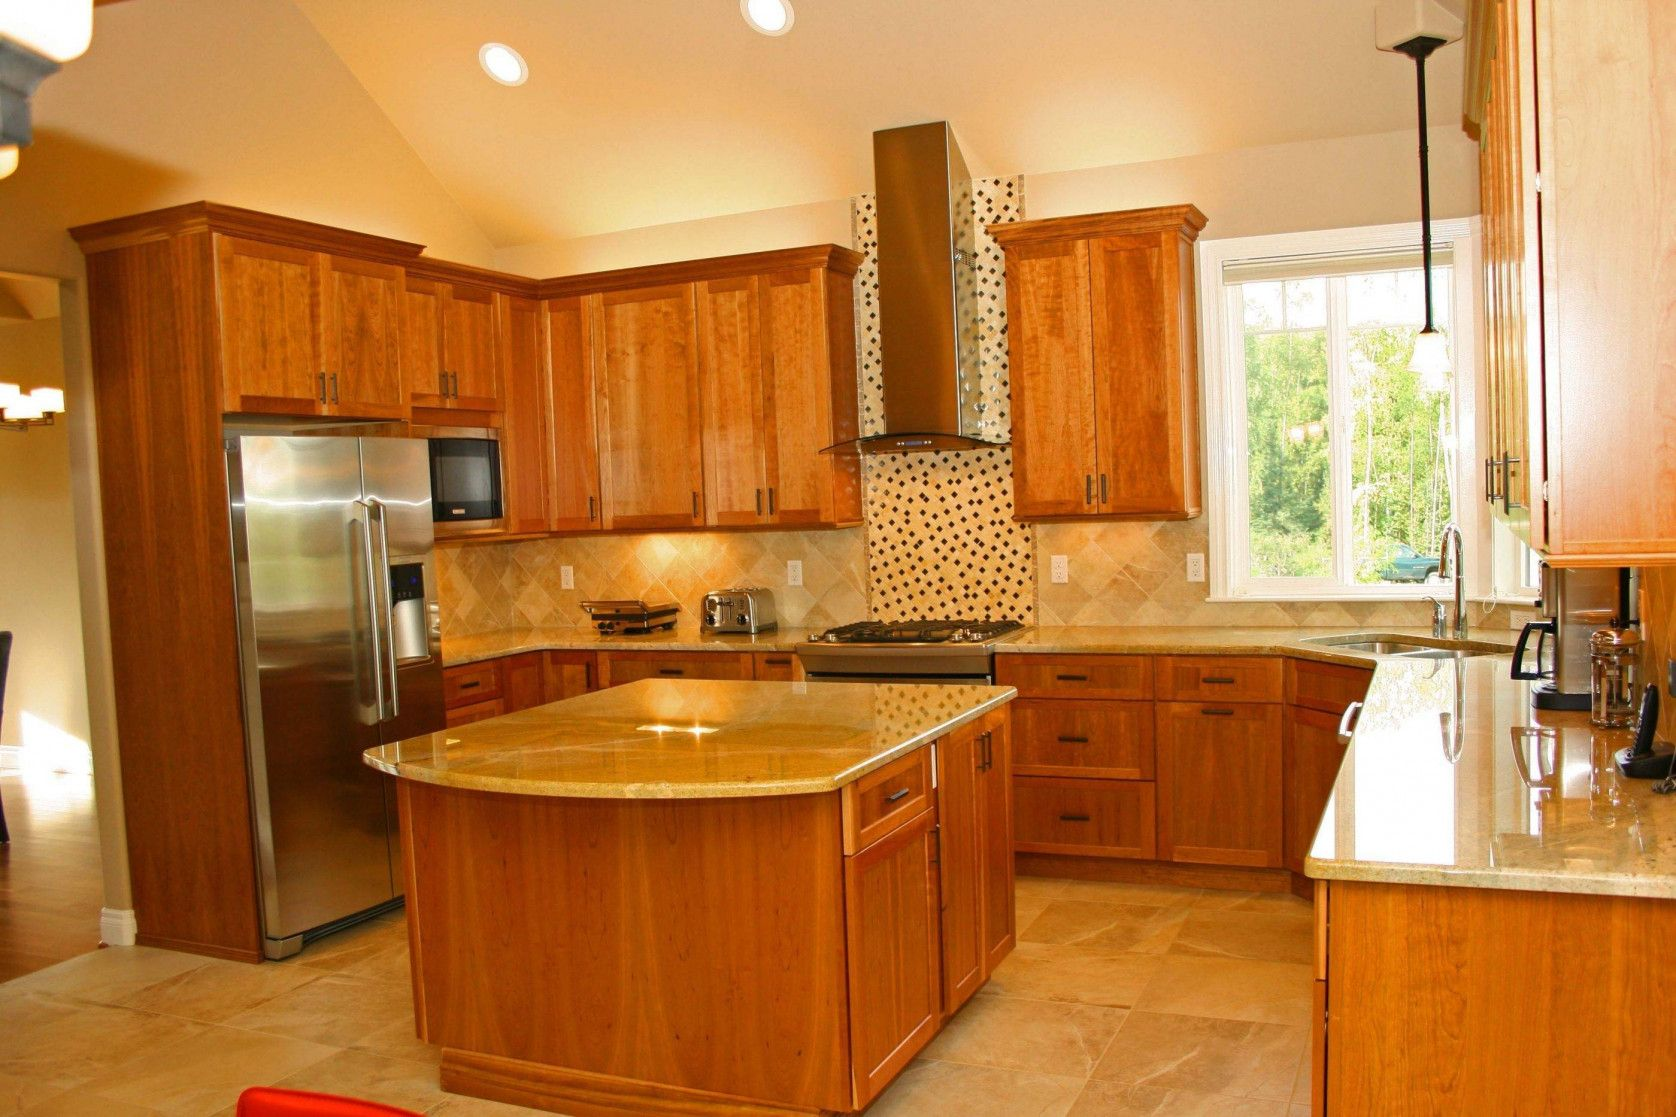 2018 42 Inch Kitchen Wall Cabinets Remodeling Ideas For Kitchens Check Mo Upper Kitchen Cabinets Kitchen Cabinets And Countertops Solid Wood Kitchen Cabinets